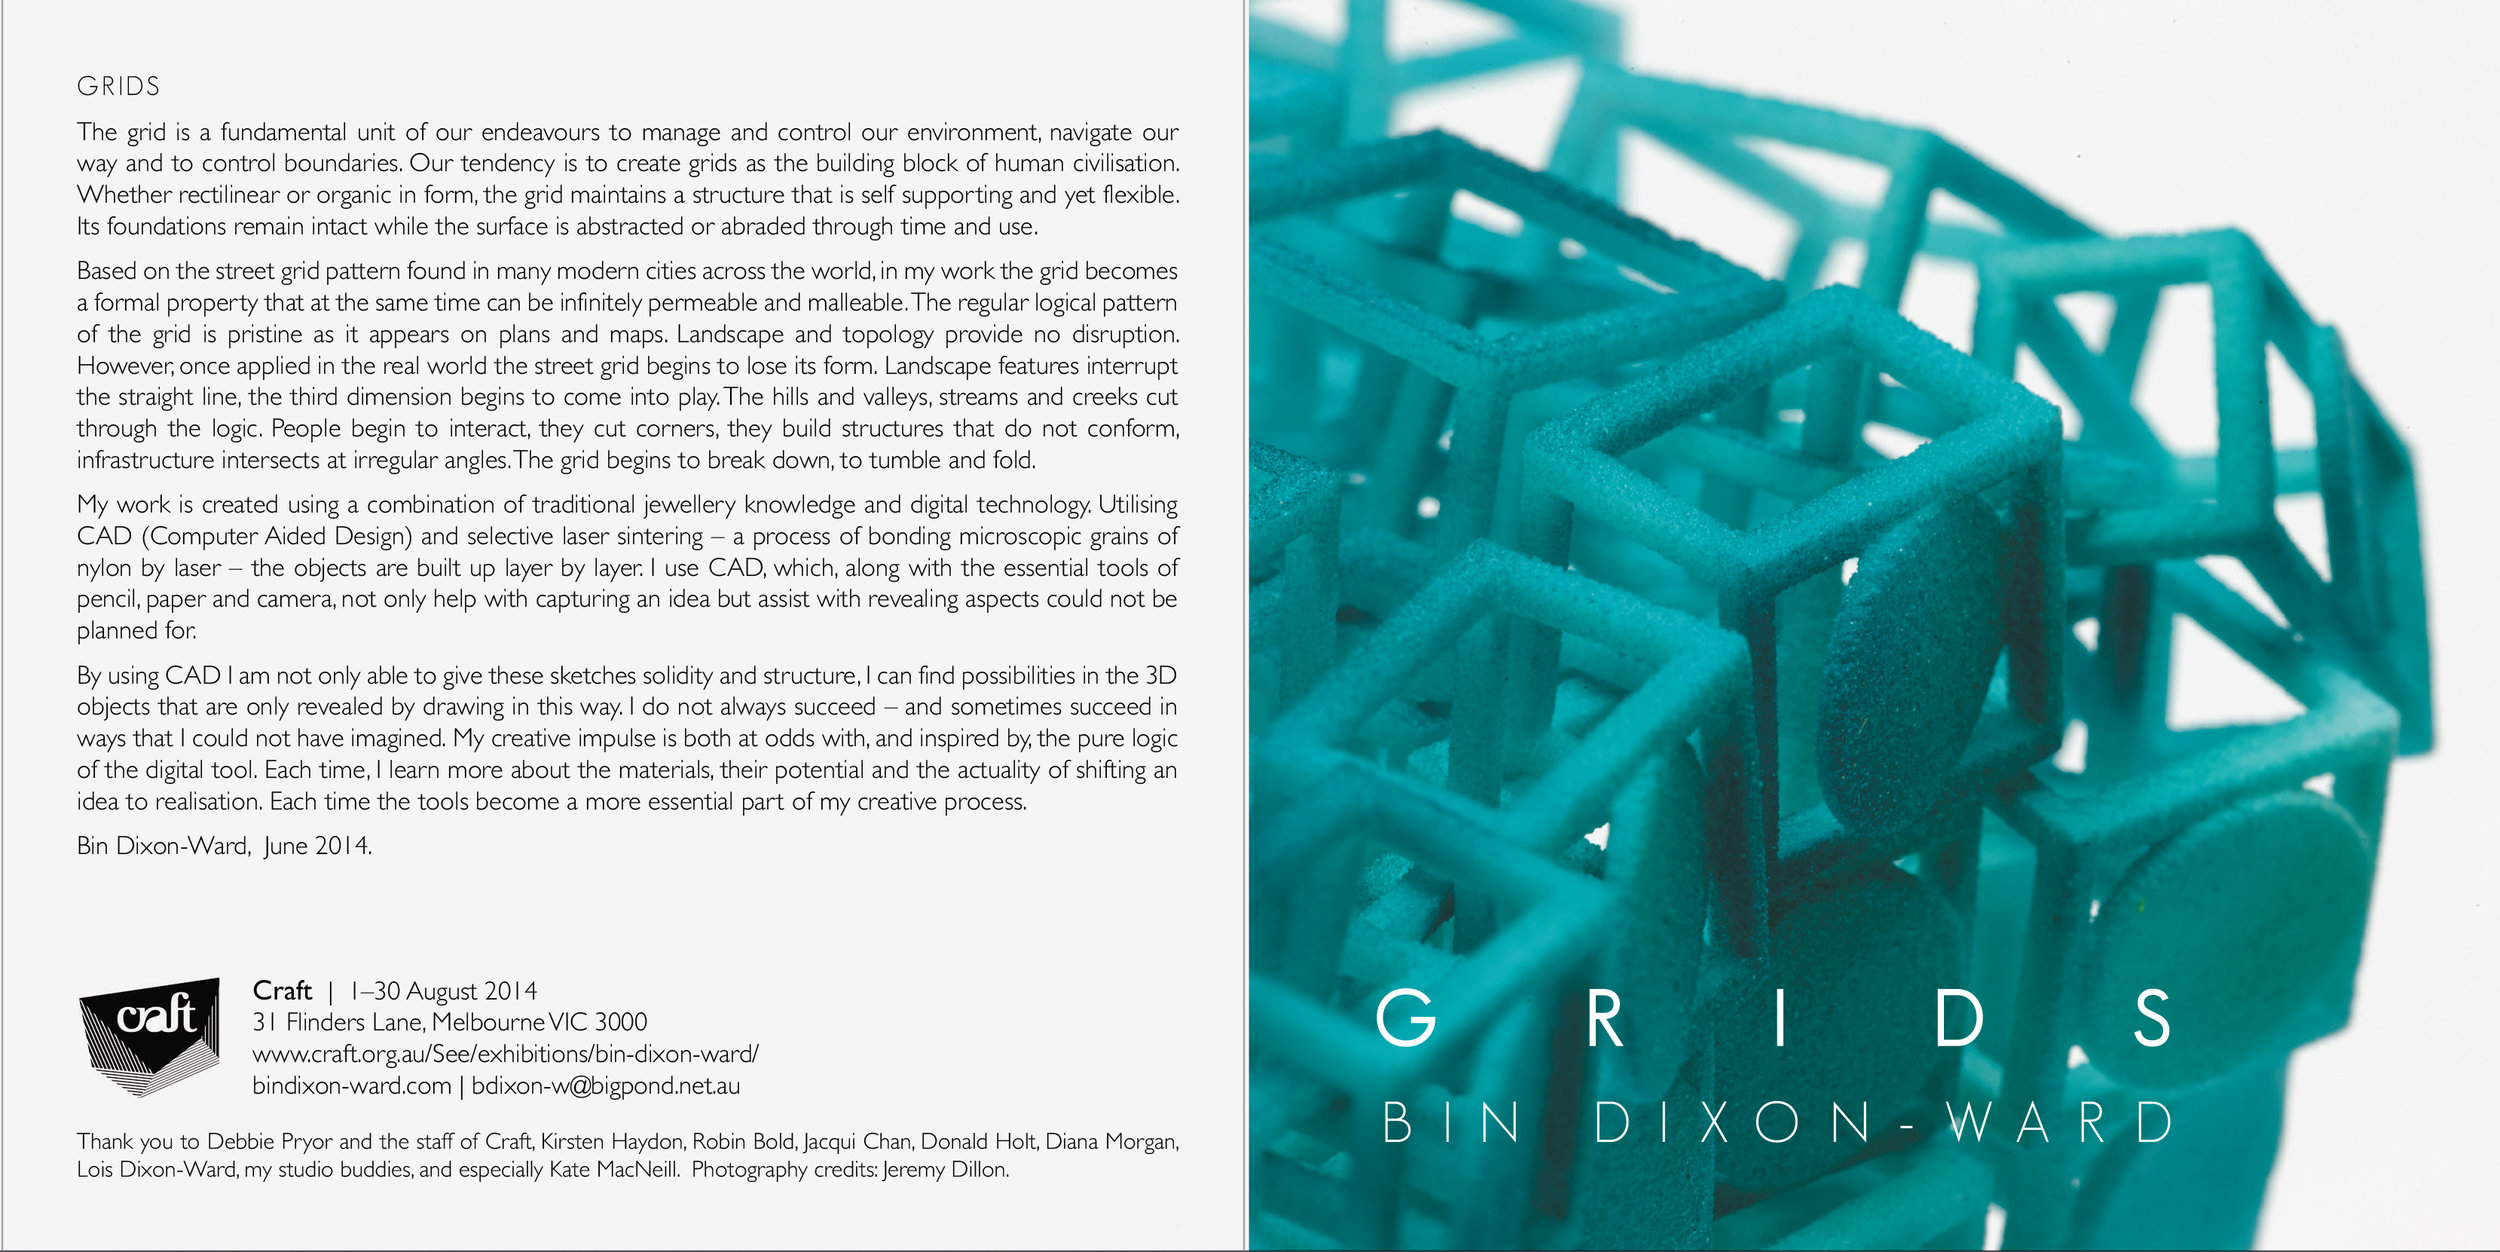 Bin Dixon-Ward Exhibition Catalogue